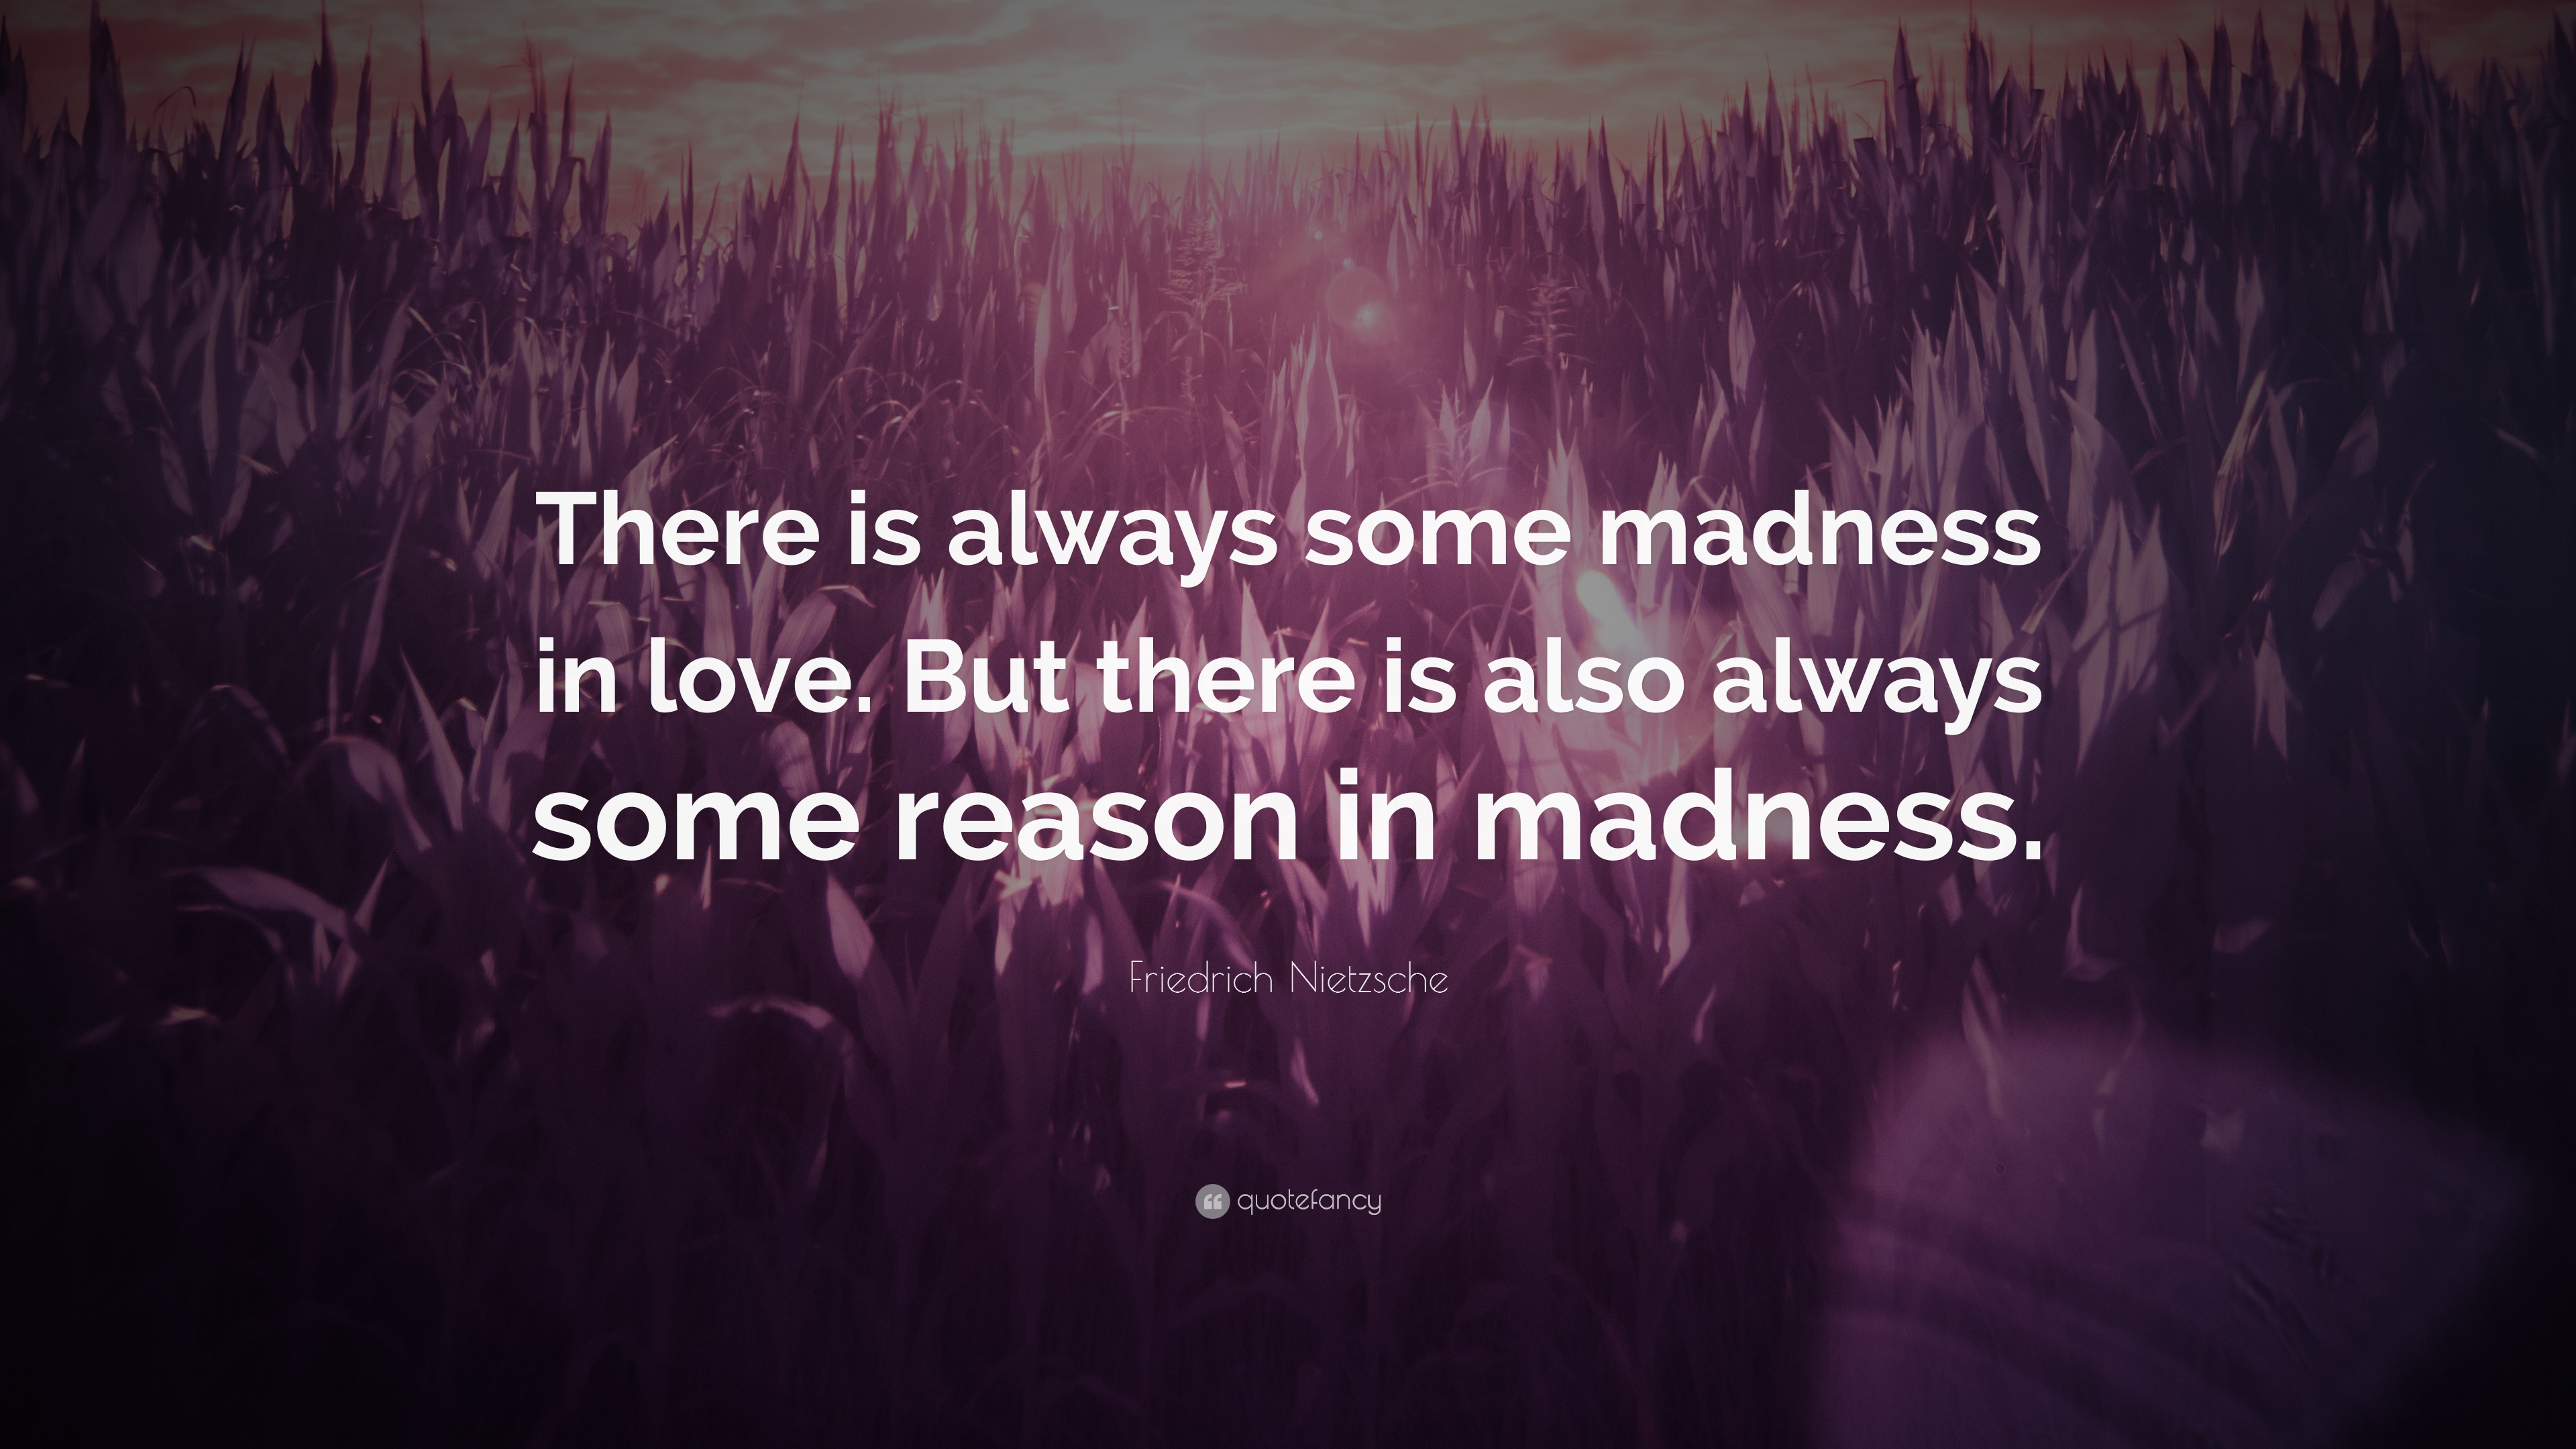 Friedrich Nietzsche Quote There Is Always Some Madness In Love